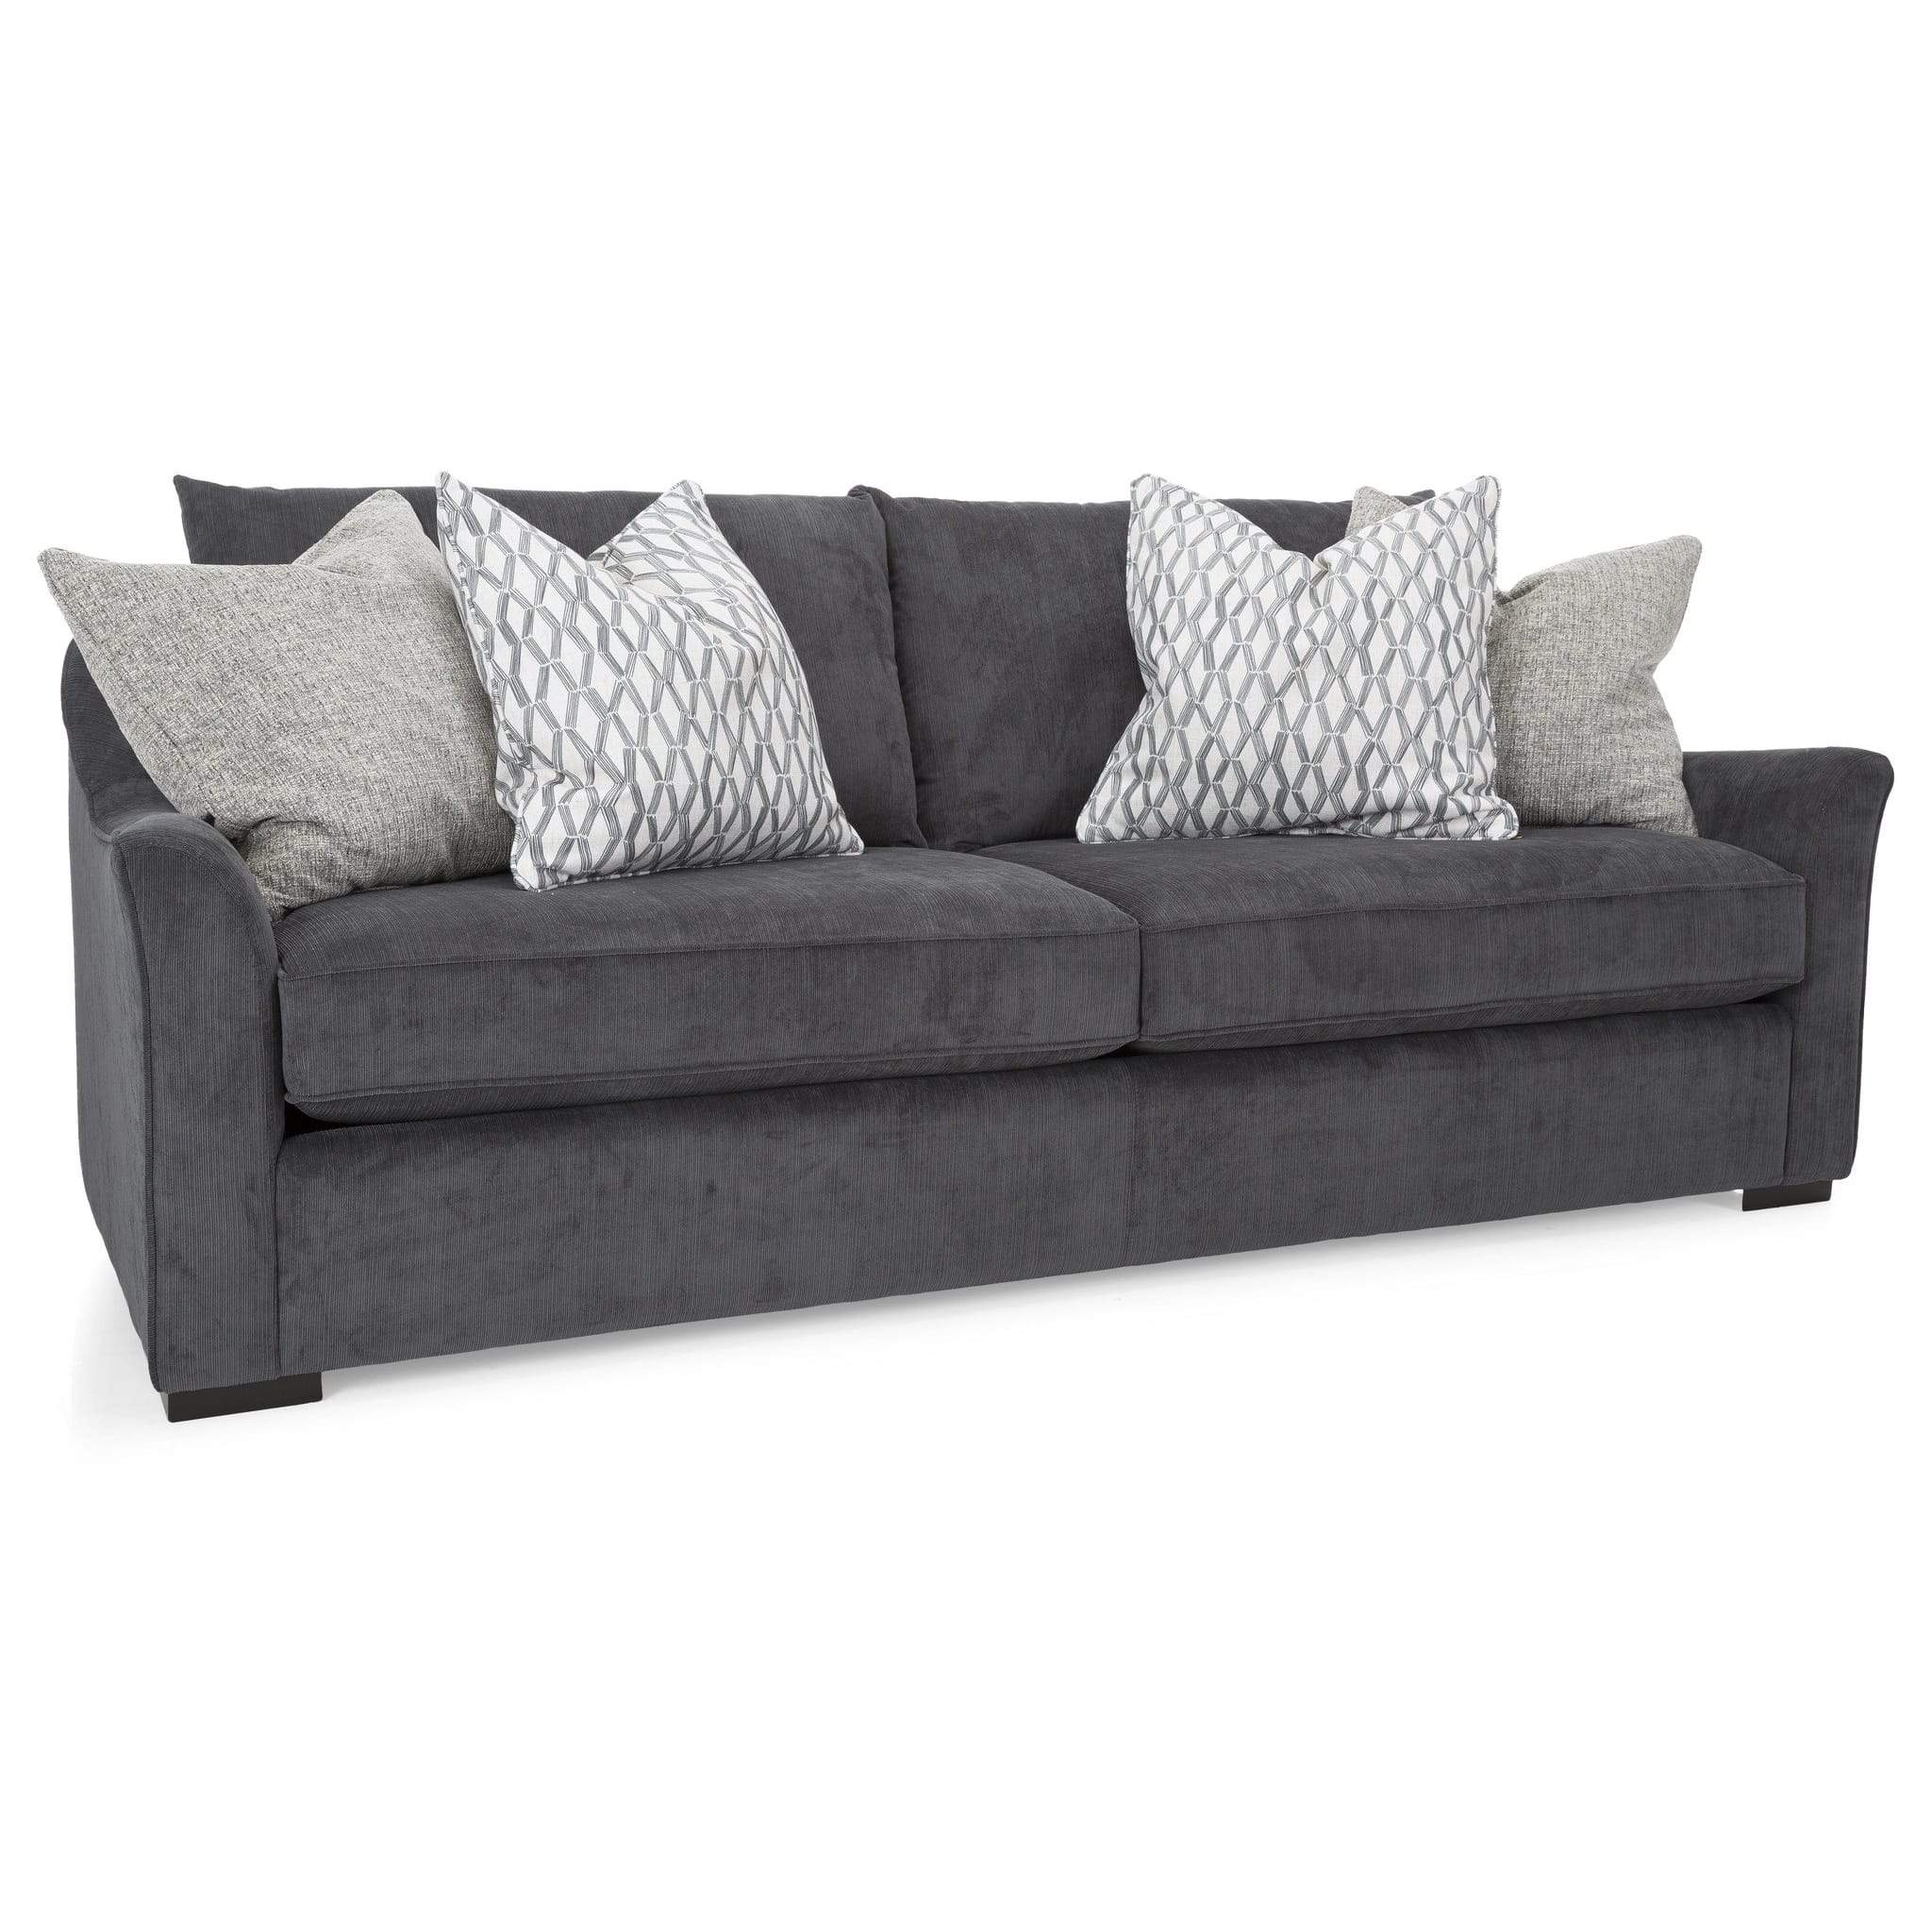 The Wilson Furniture Collection Sofa S C Steven Sabados S C